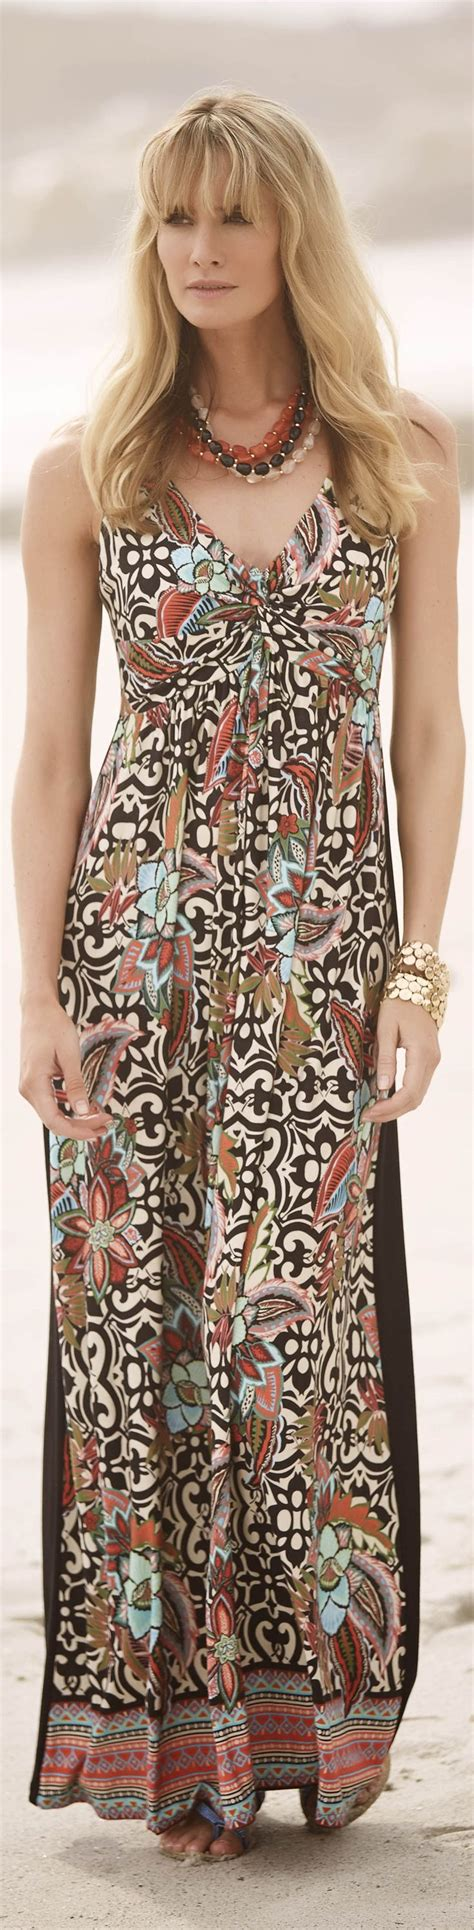 bohemian clothing for over 60 year olds 782 best baby boomers fashion images on pinterest